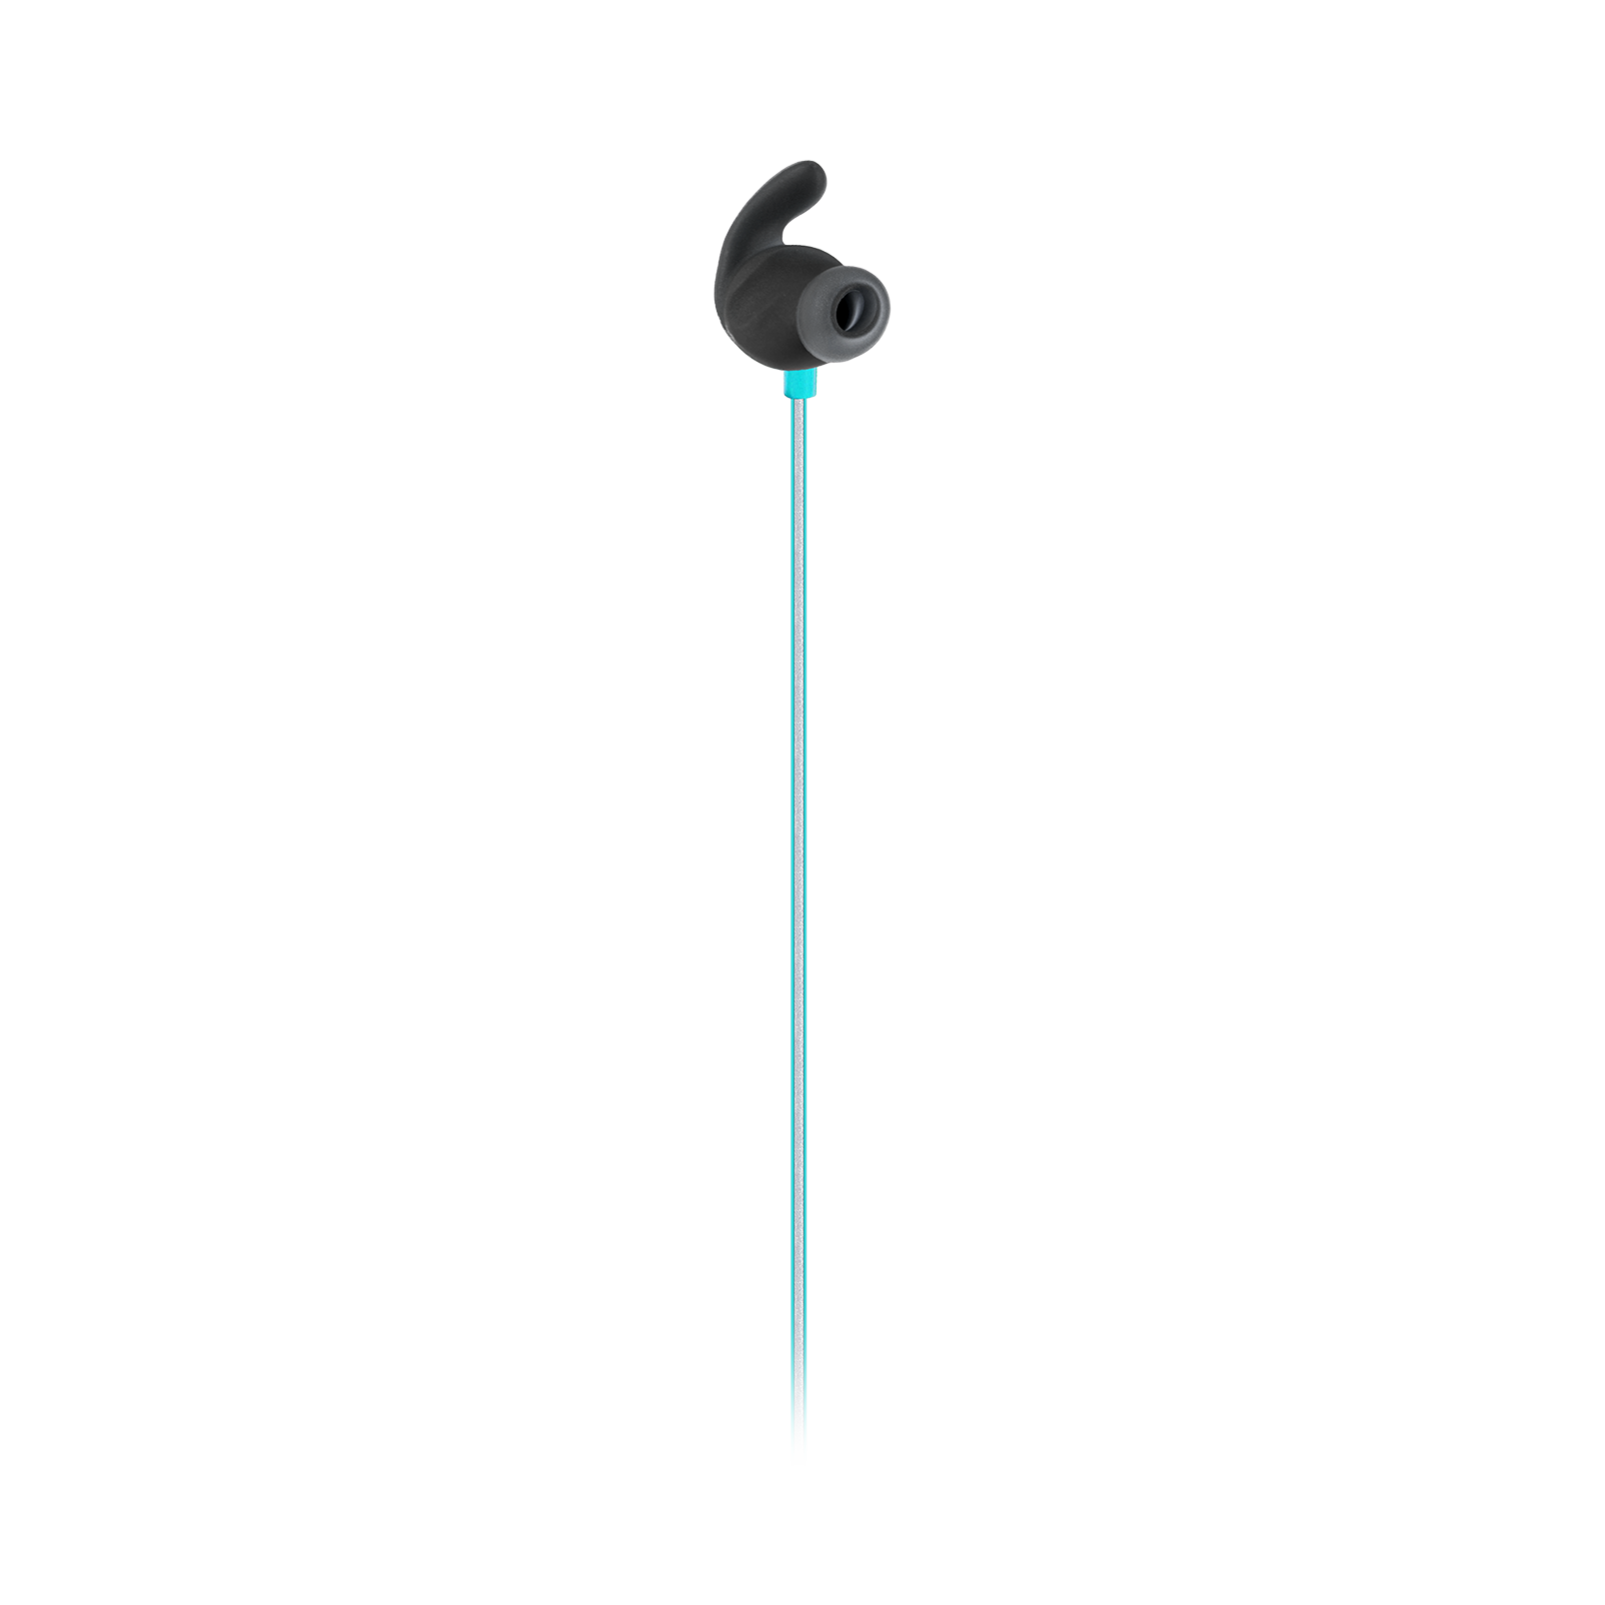 Reflect Mini - Teal - Lightweight, in-ear sport headphones - Detailshot 1